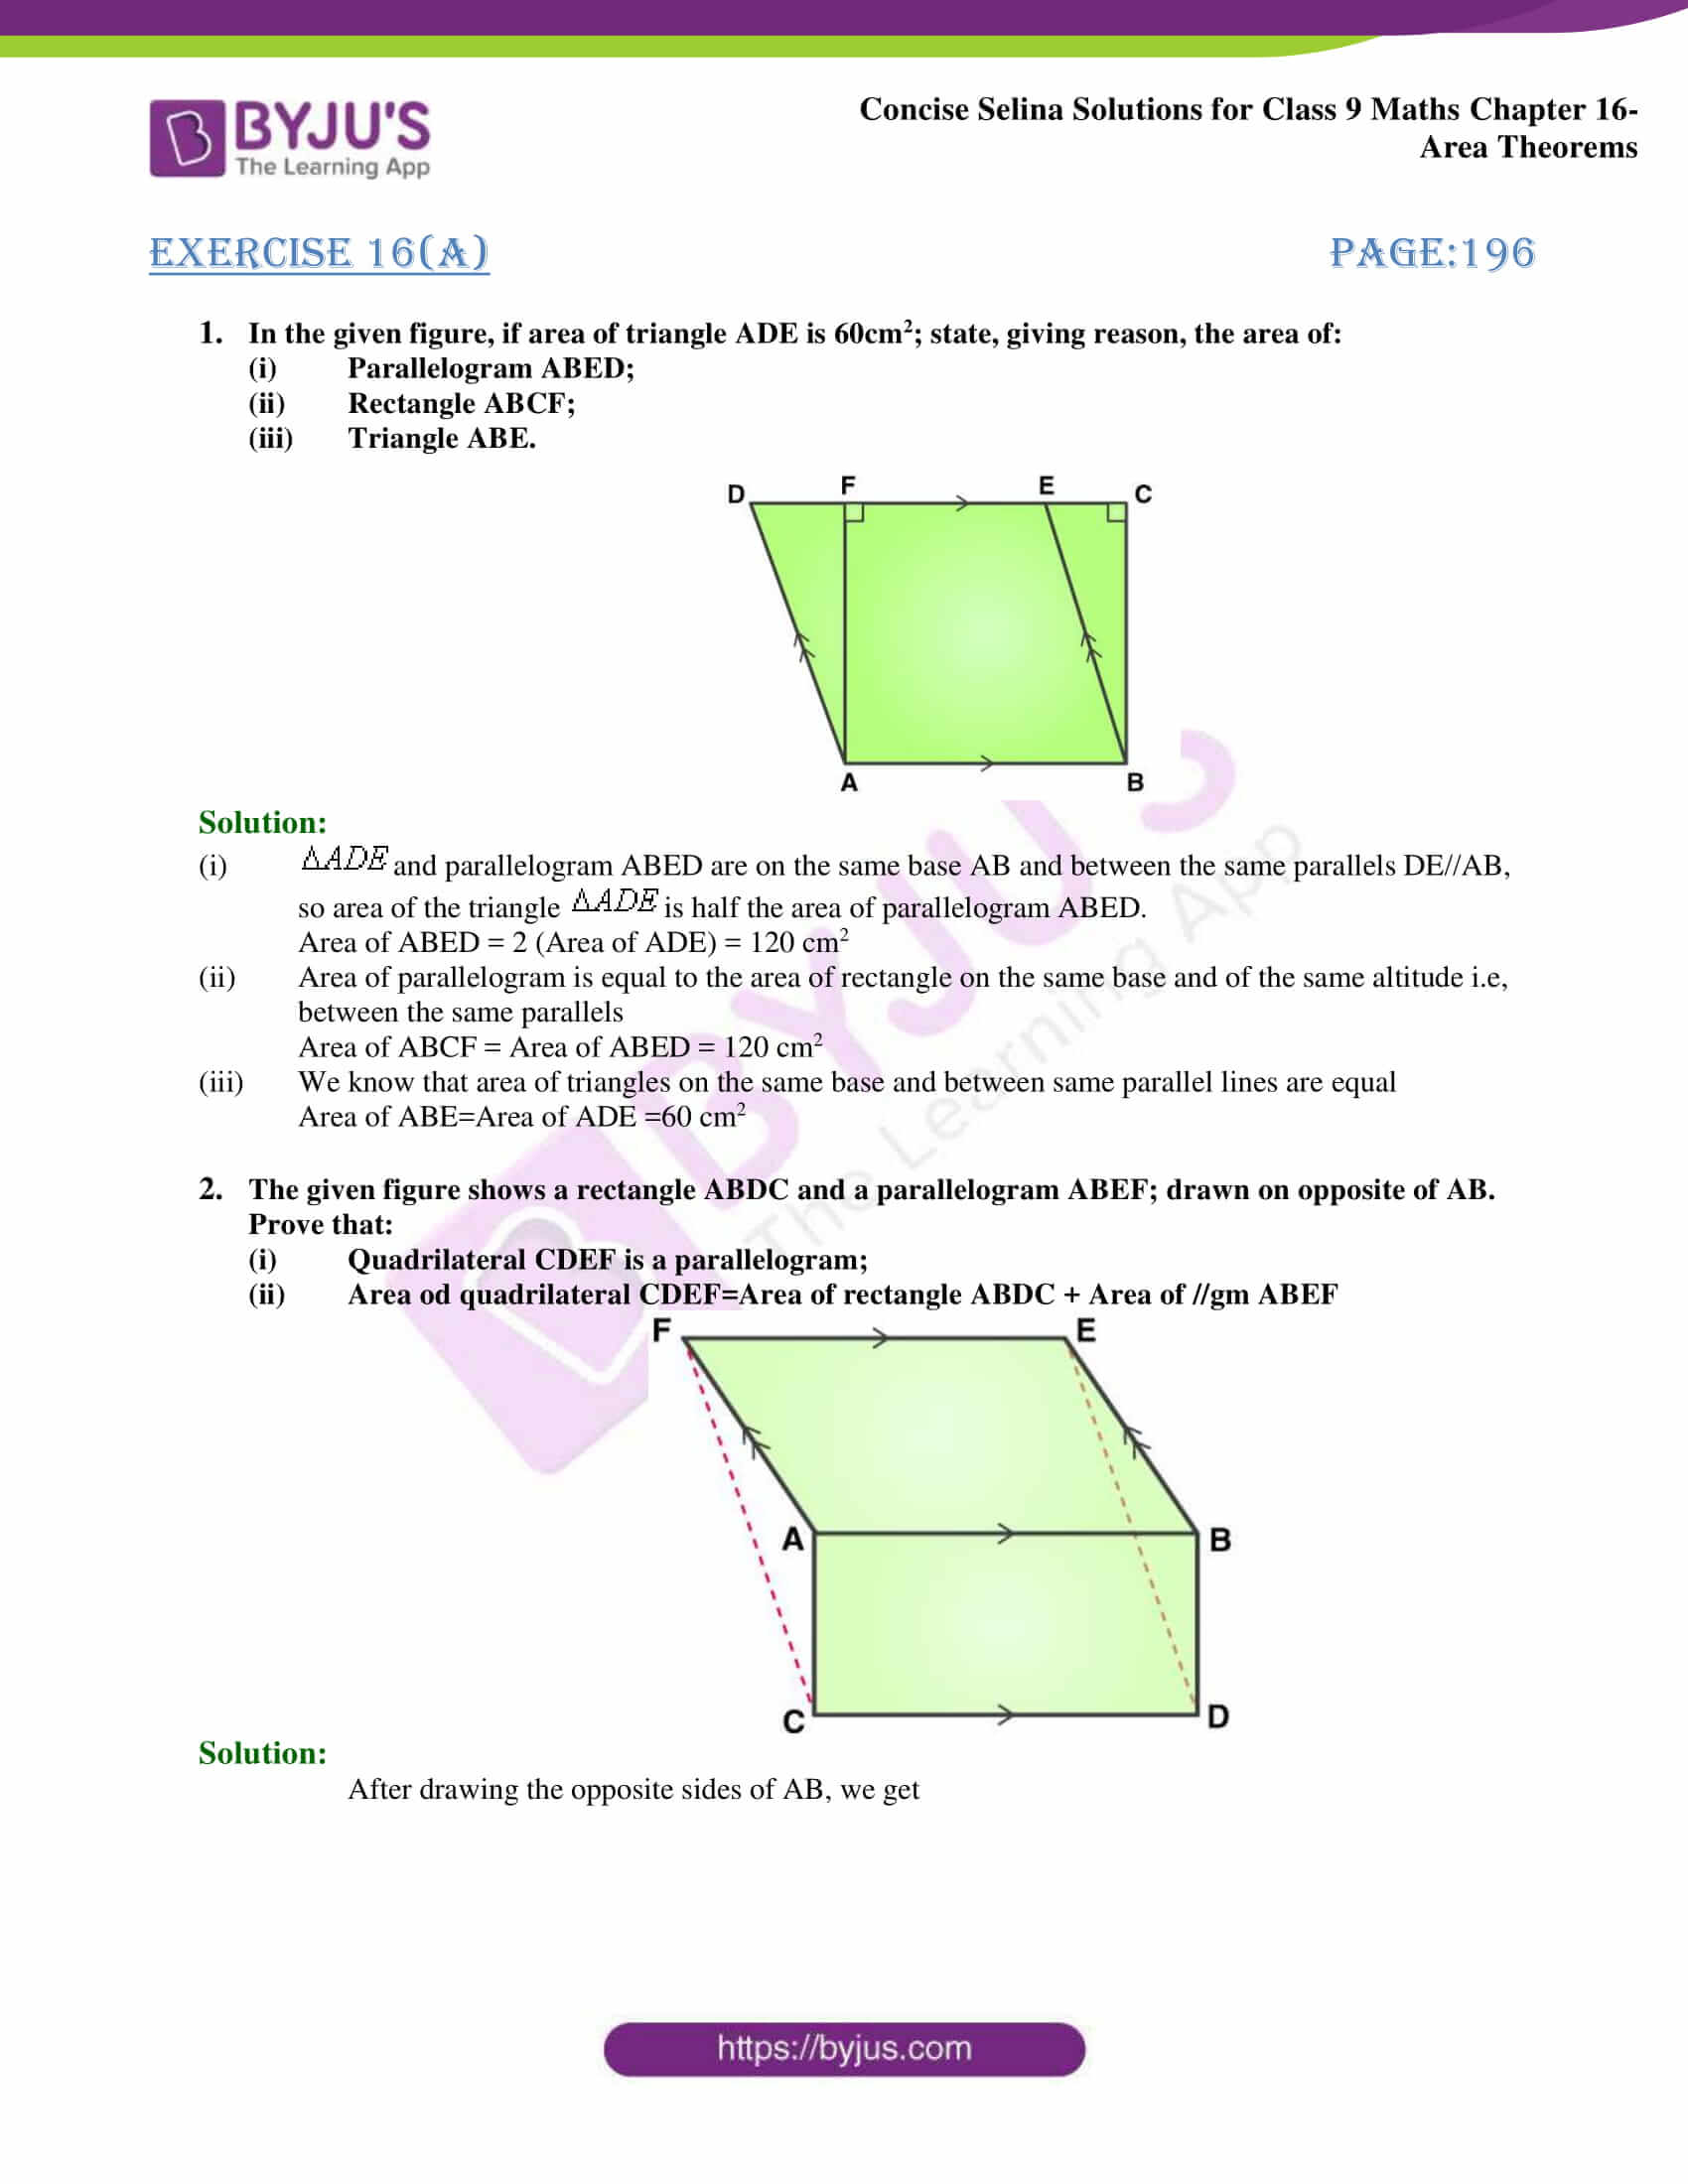 Concise Selina Solutions Class 9 Maths Chapter 16 Area Theorems part 01